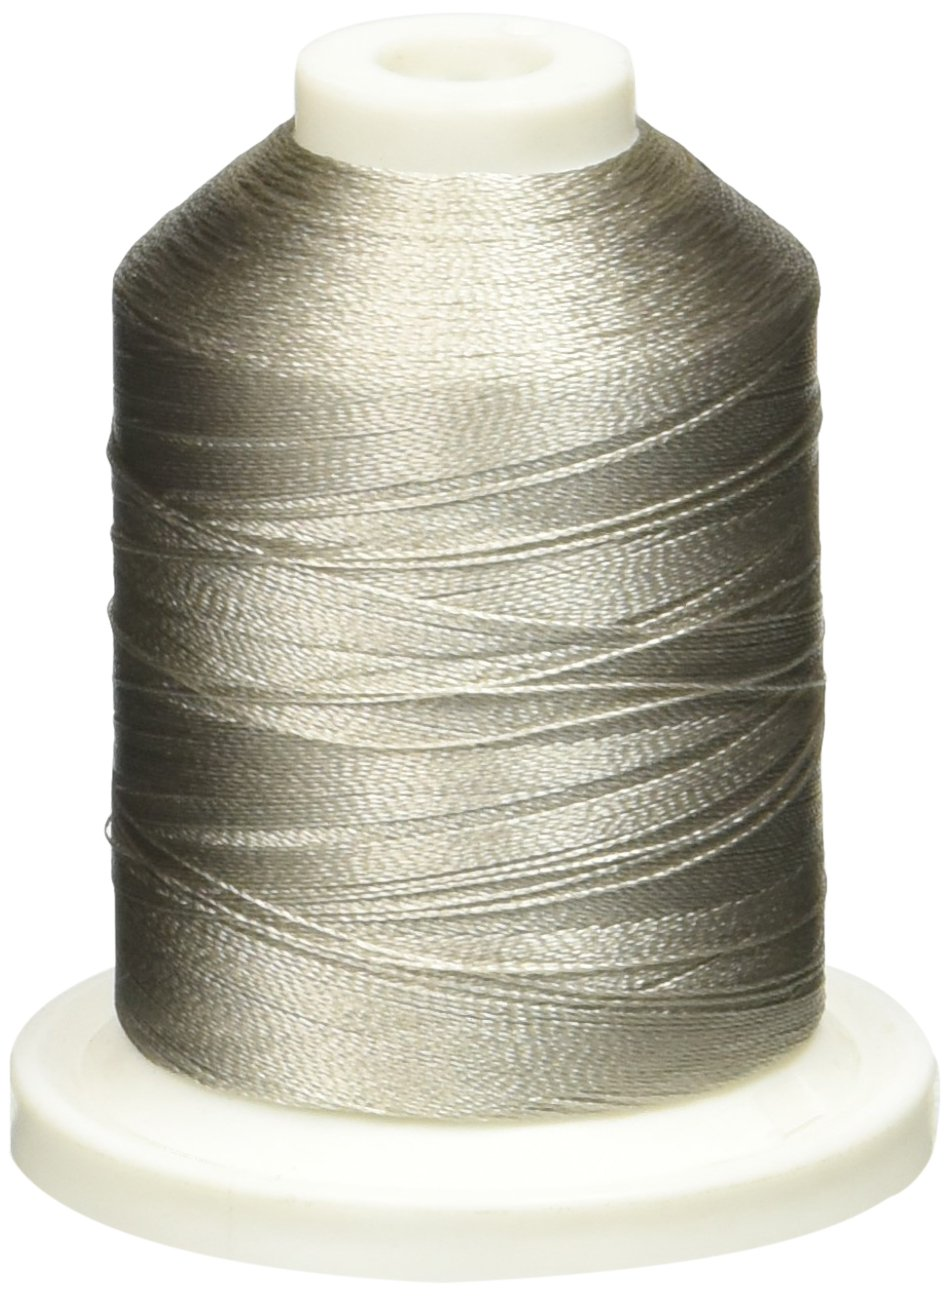 Robison-Anton 300S-2733 Rayon Super Strength Thread, 1100-Yard, Pro-Cool Gray